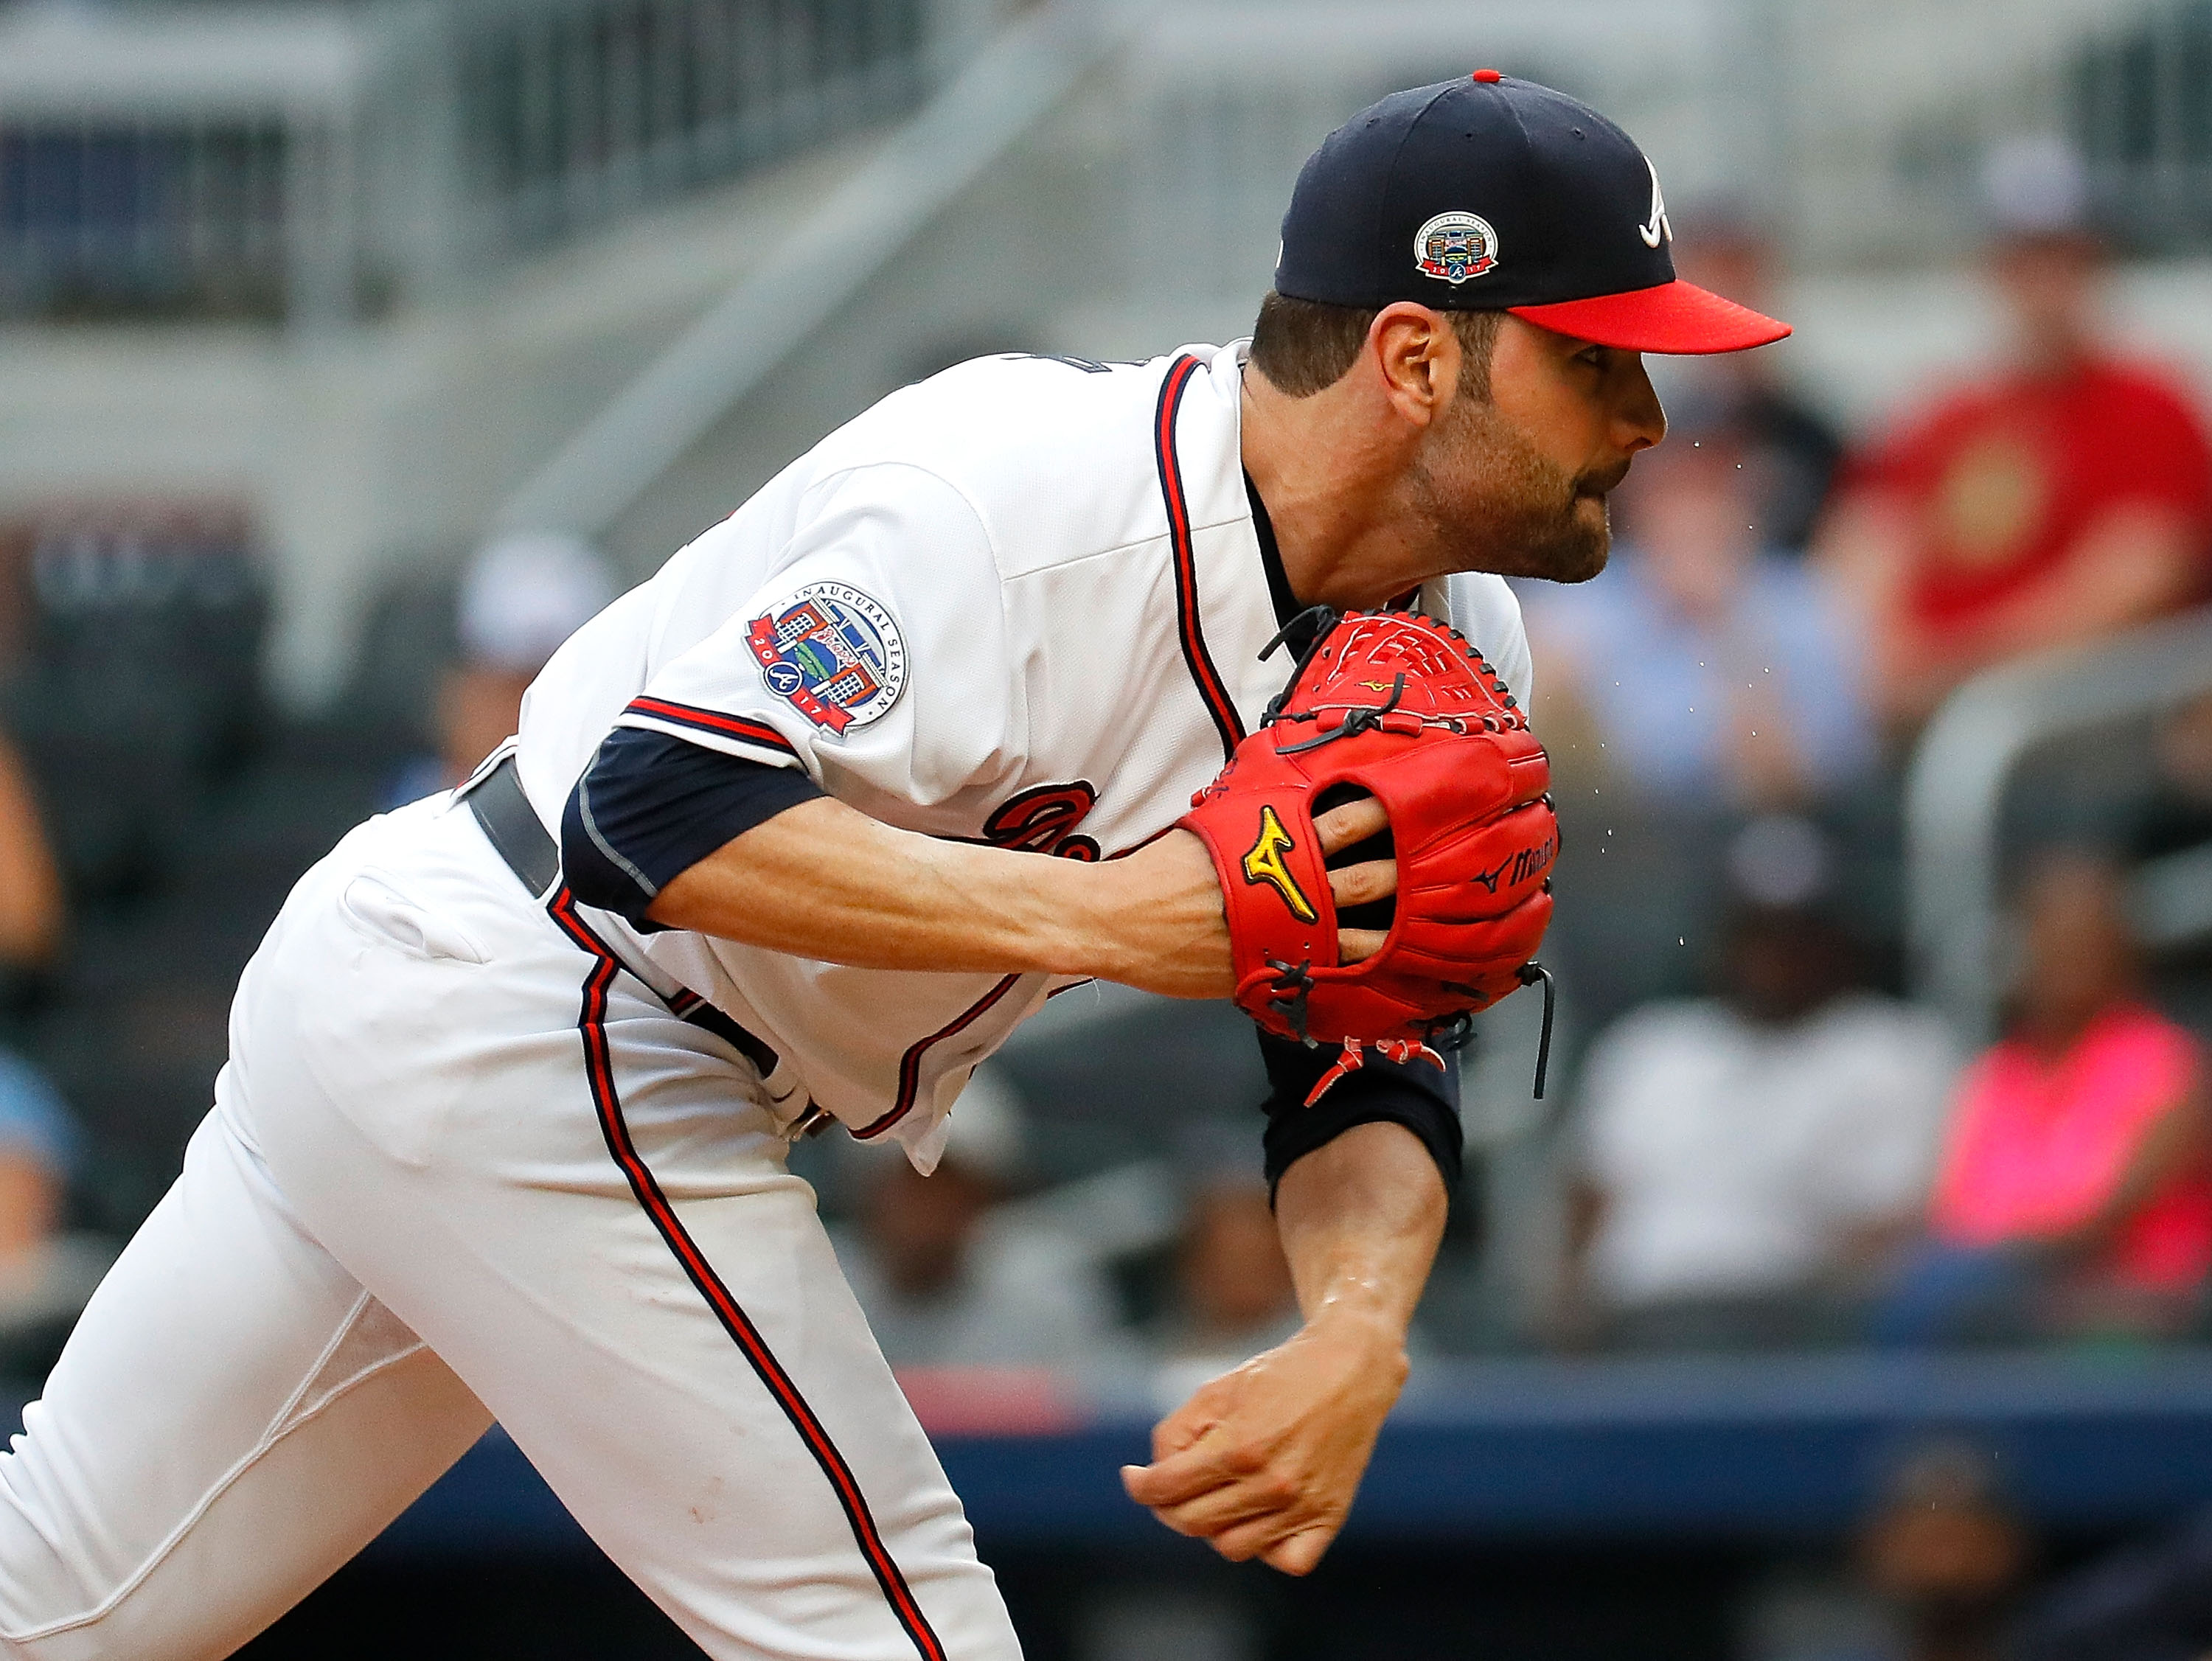 Atlanta Braves knock on Wood, trample Los Angeles Dodgers 12-3